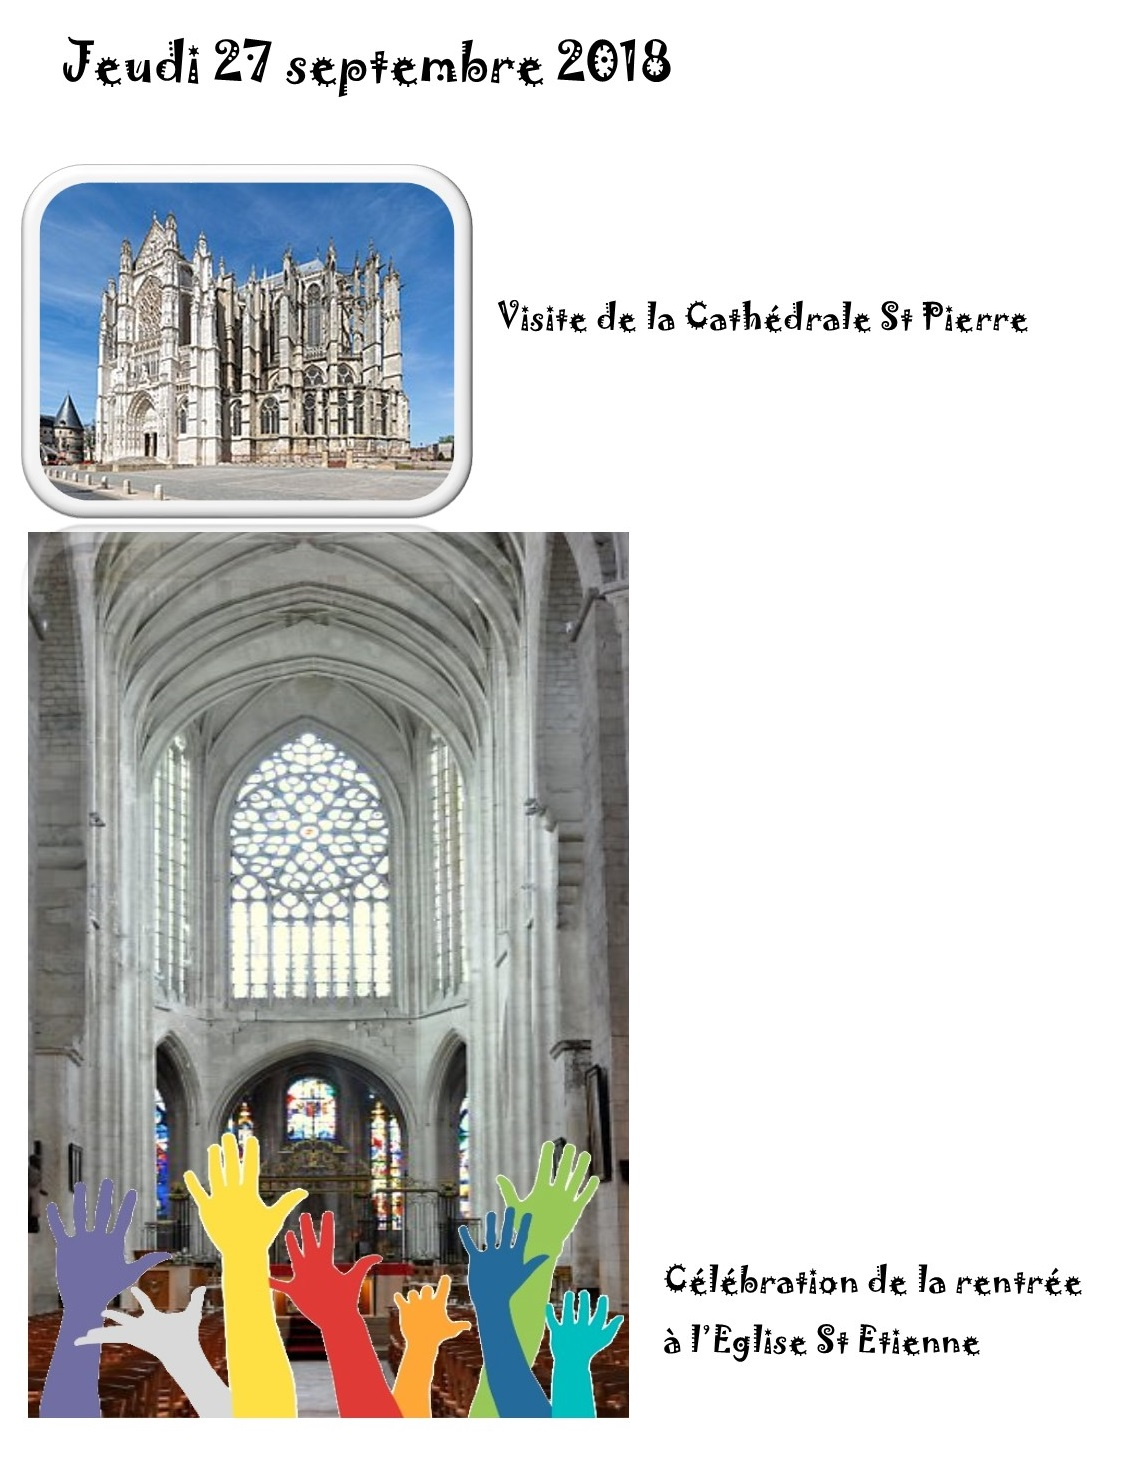 27 09 2018 VISITE CATHEDRALE ET CELEBRATION RENTREE SCOLAIRE 2018